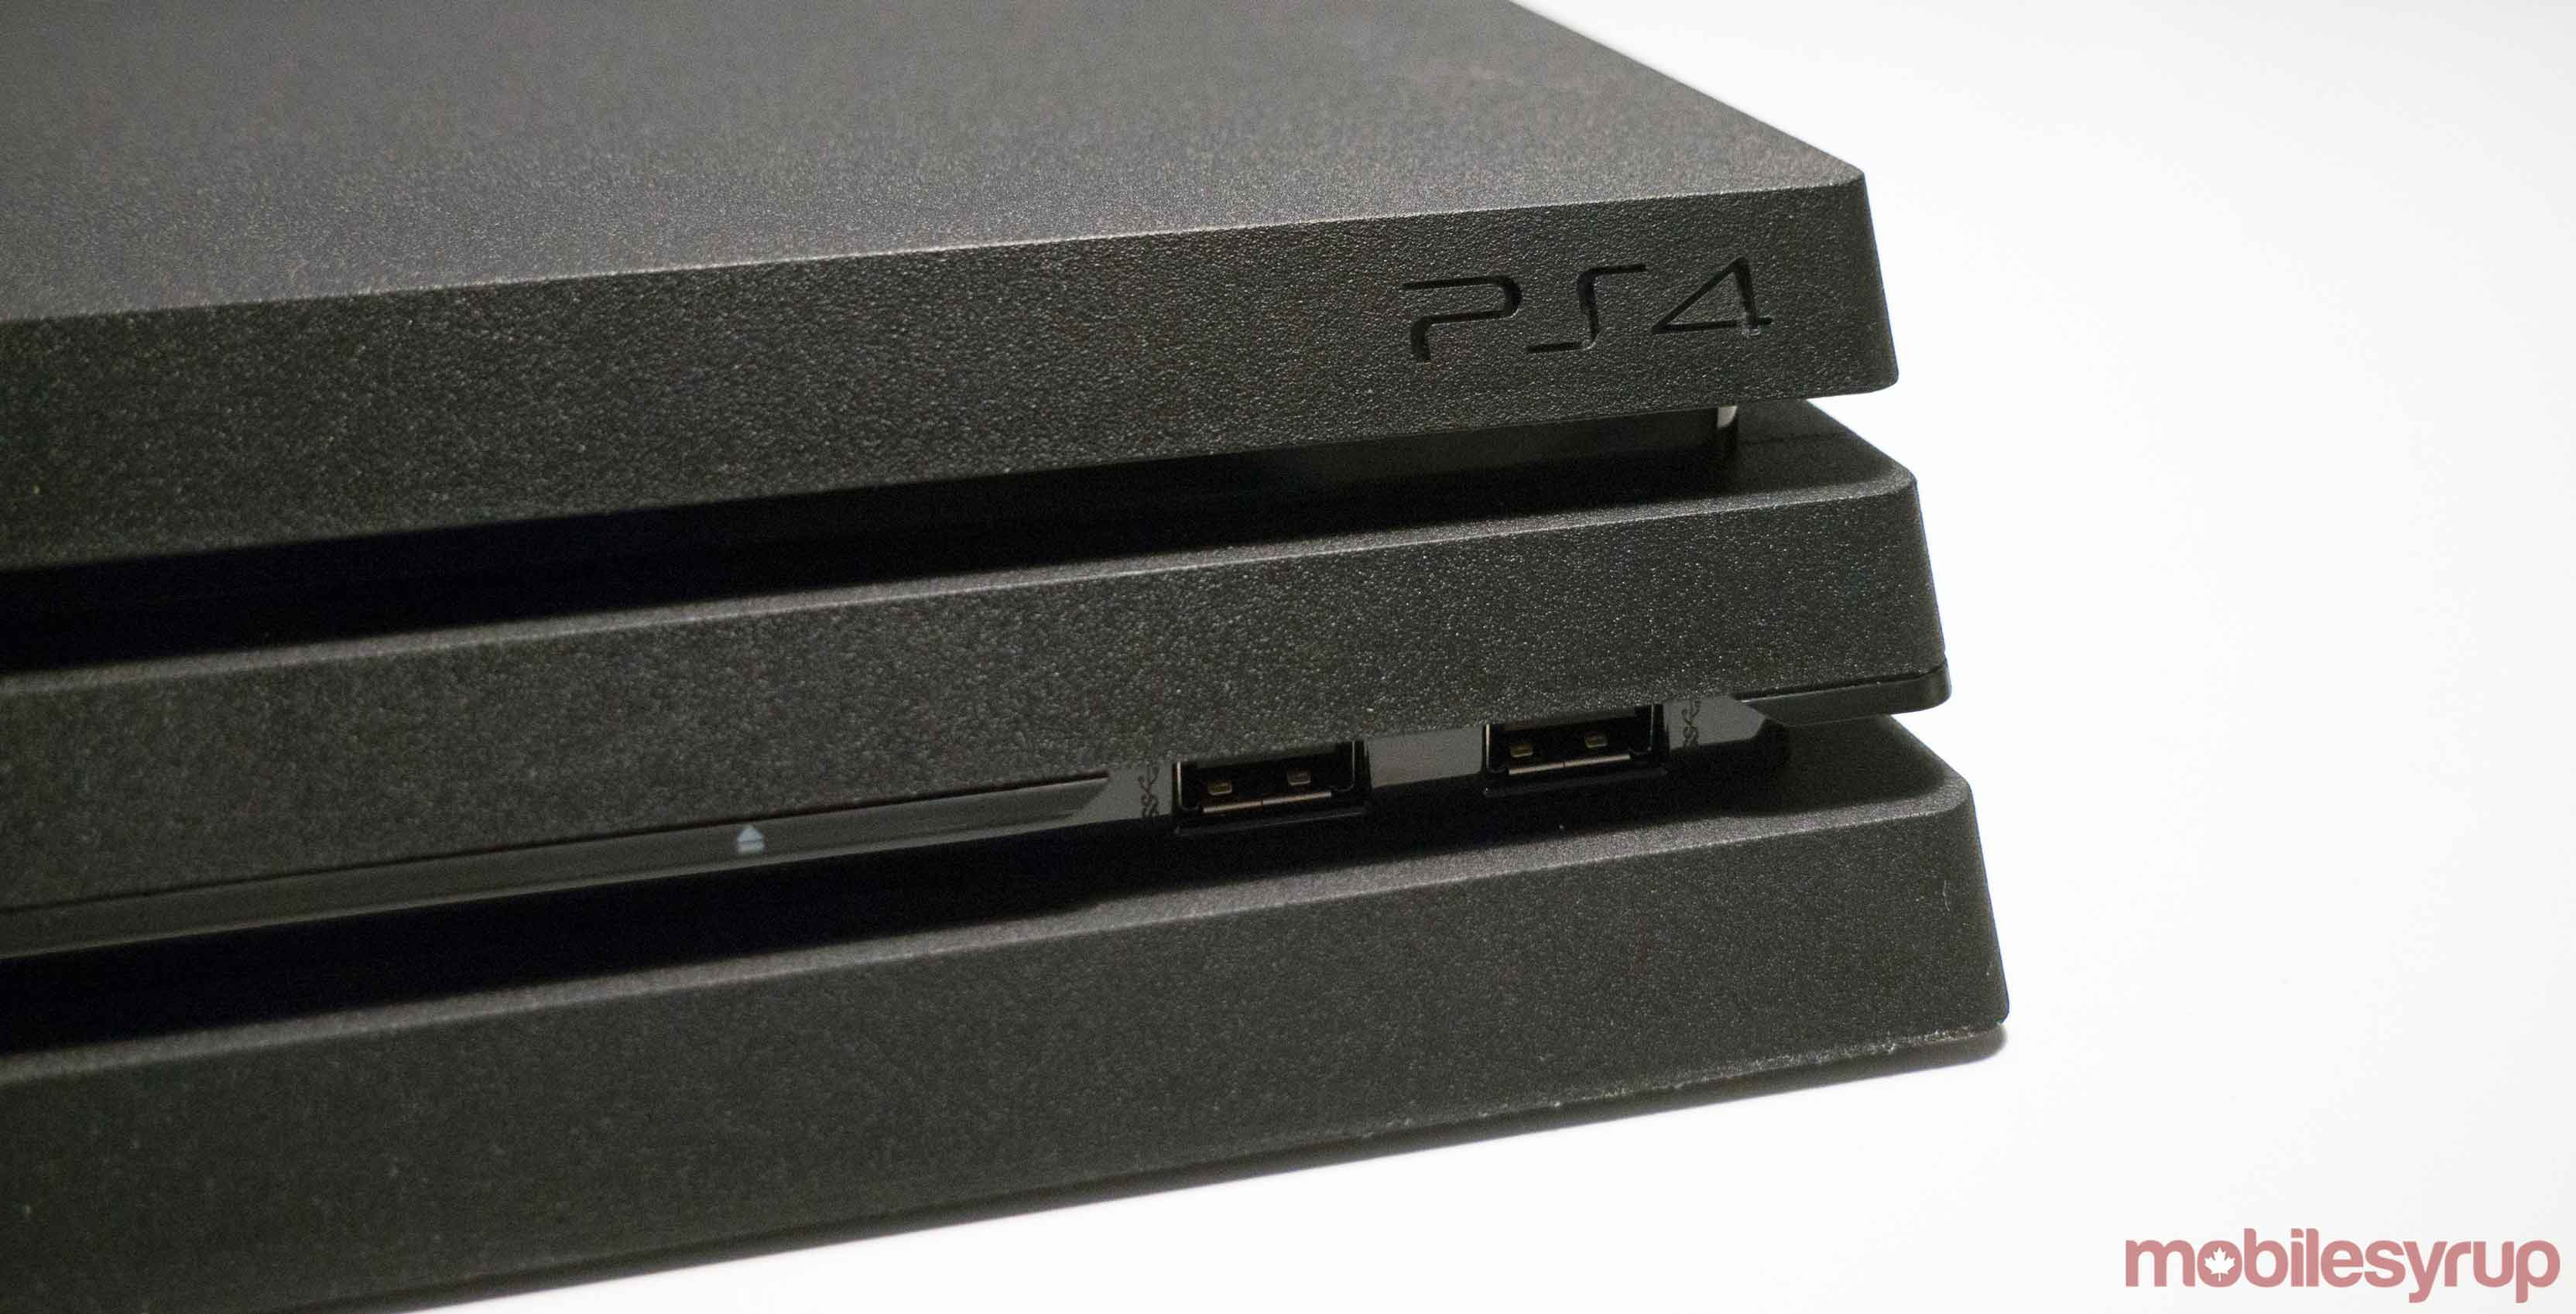 PlayStation 2 Classic Games Comes To PC Thanks To PS Now